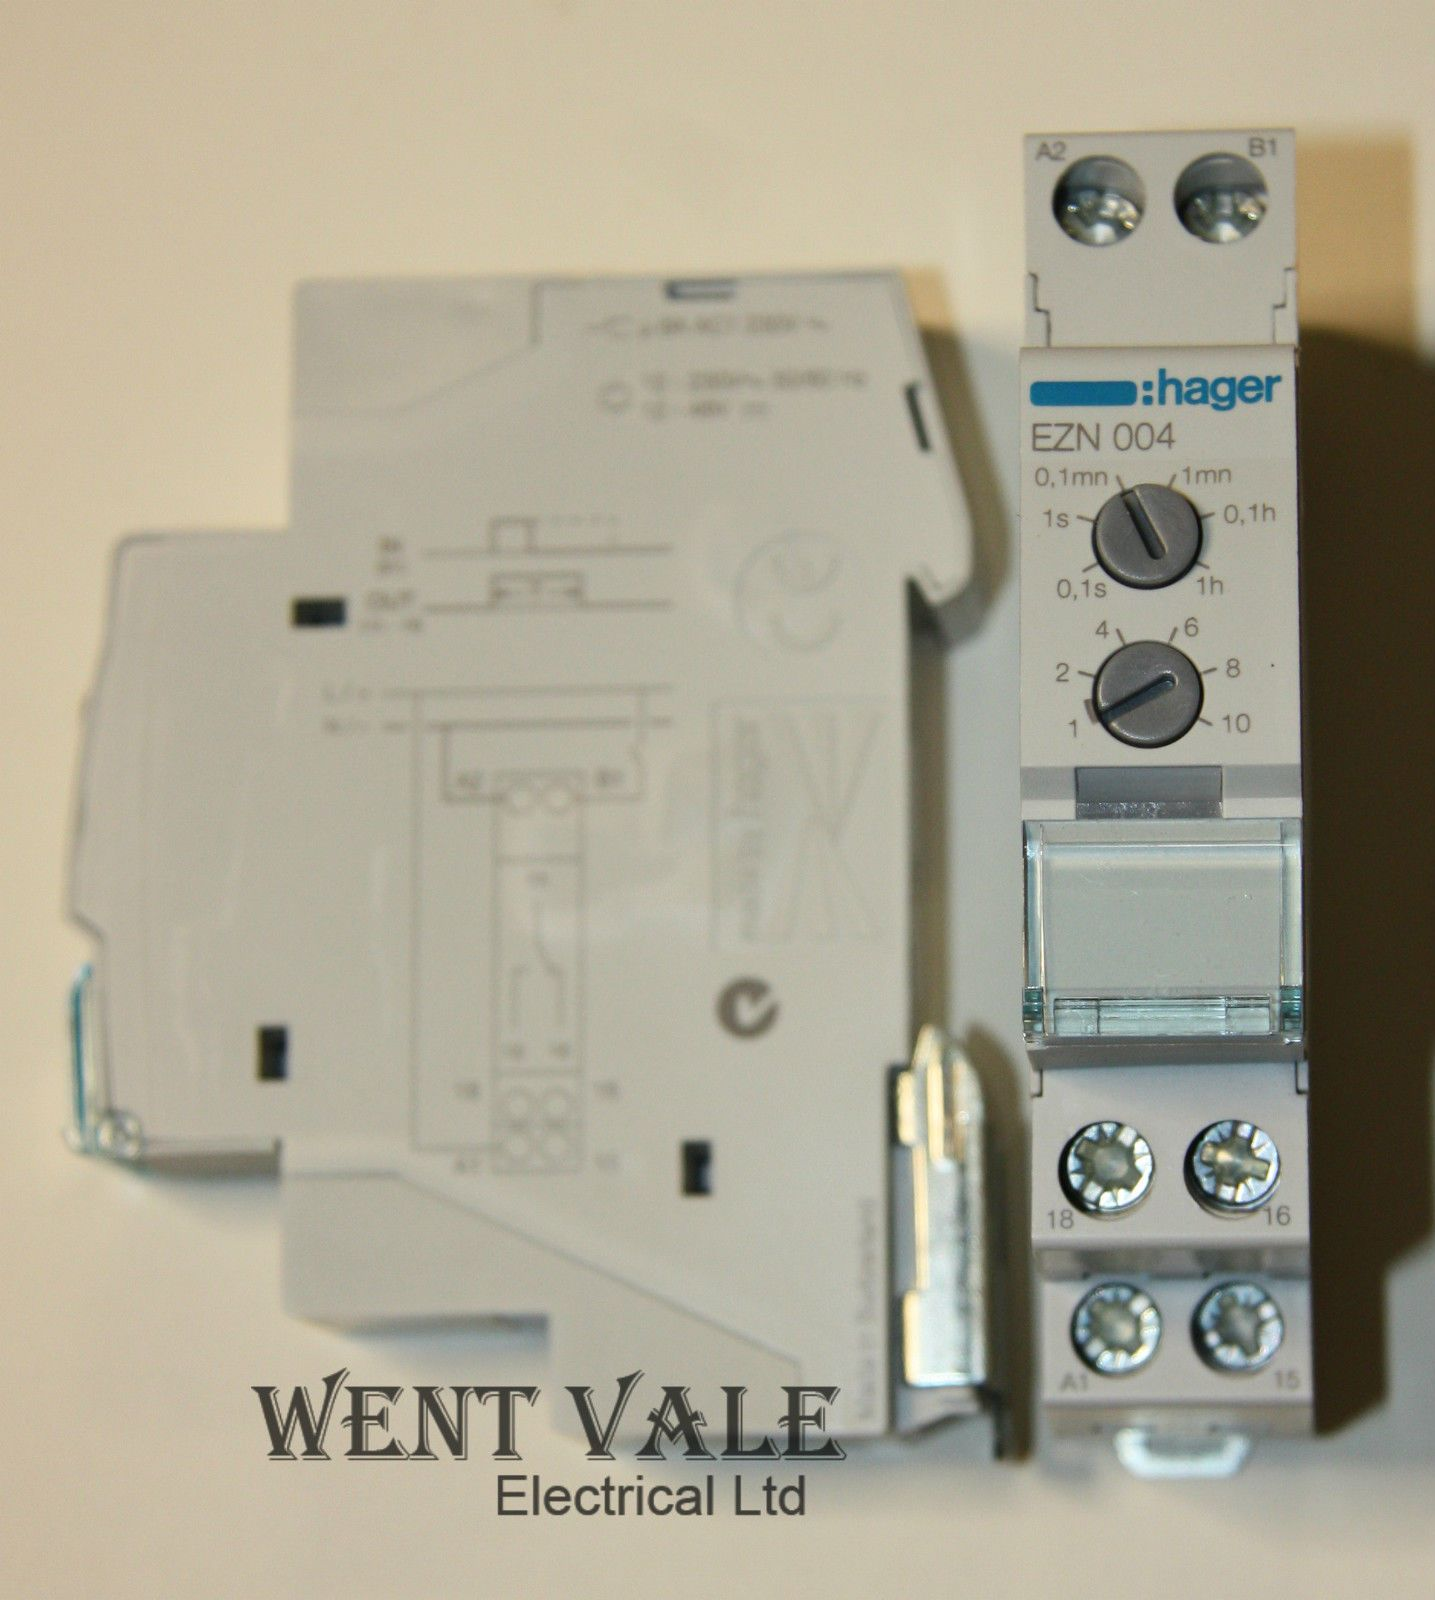 hager ezn004 delay timer relay new in box 11831 p hager ezn004 delay timer relay new in box fuse box timer at mr168.co